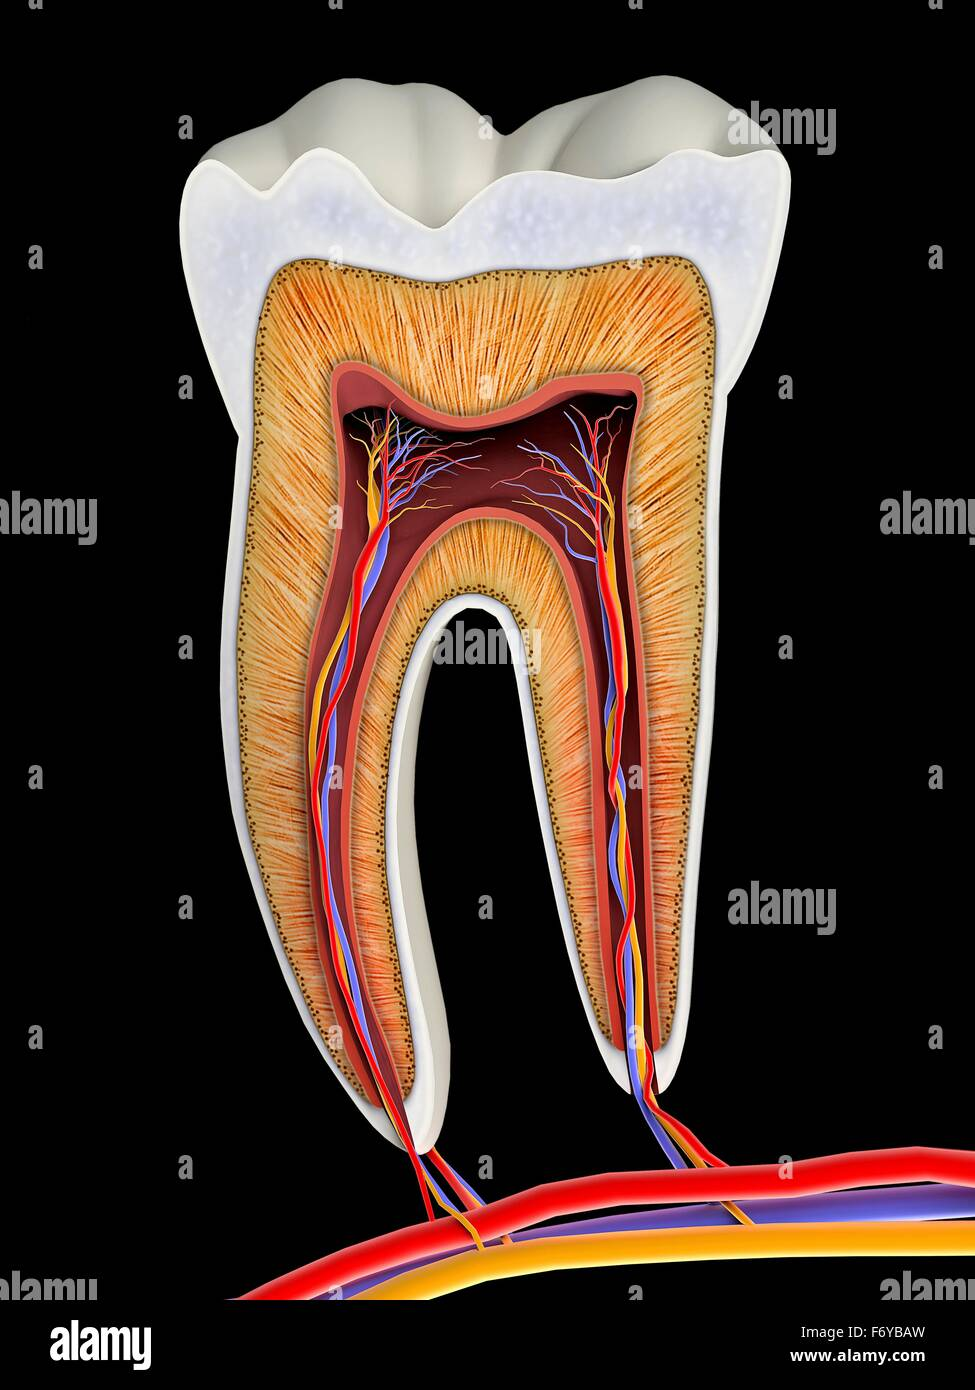 molar tooth cross-section  artwork  the upper  biting  surfaces of stock photo  90341409